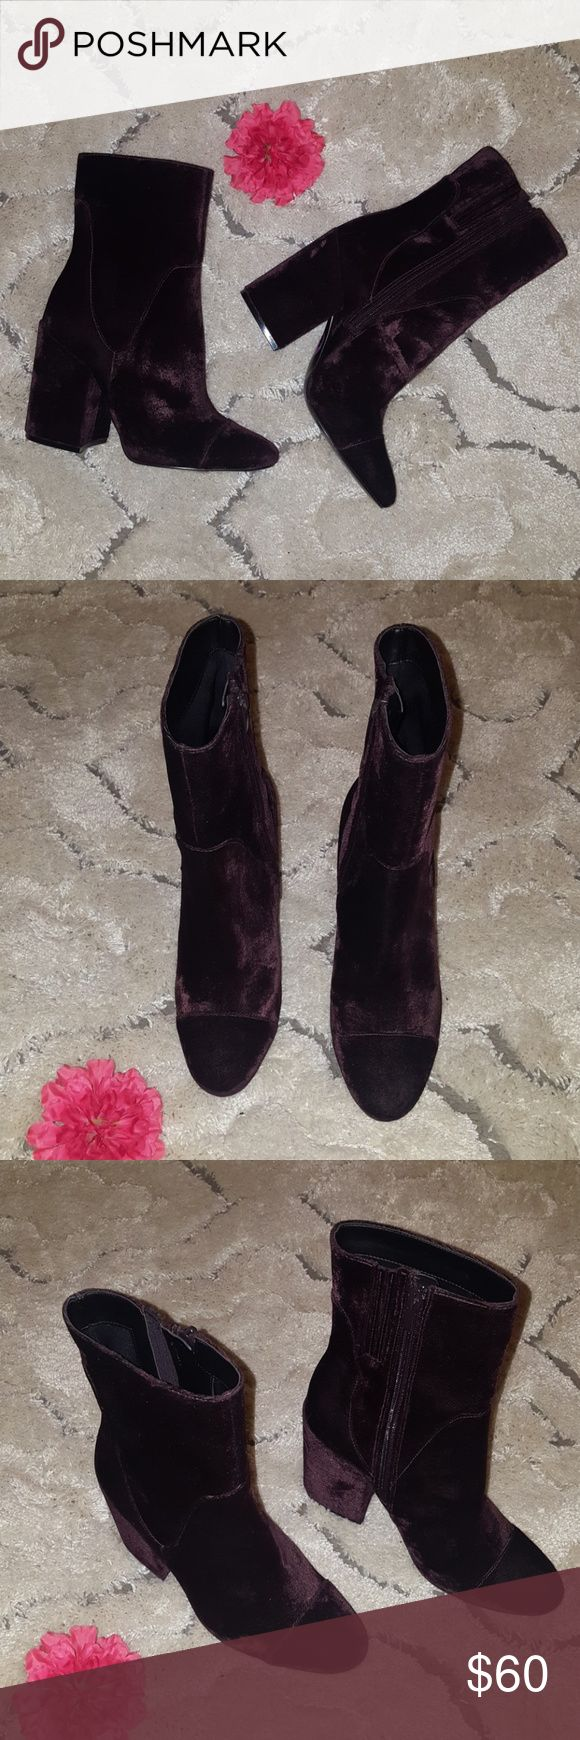 Kendall and Kylie boots NWOT Dark Purple Kendall and Kylie Boots, size 8.5 NWOT Kendall & Kylie Shoes Heeled Boots